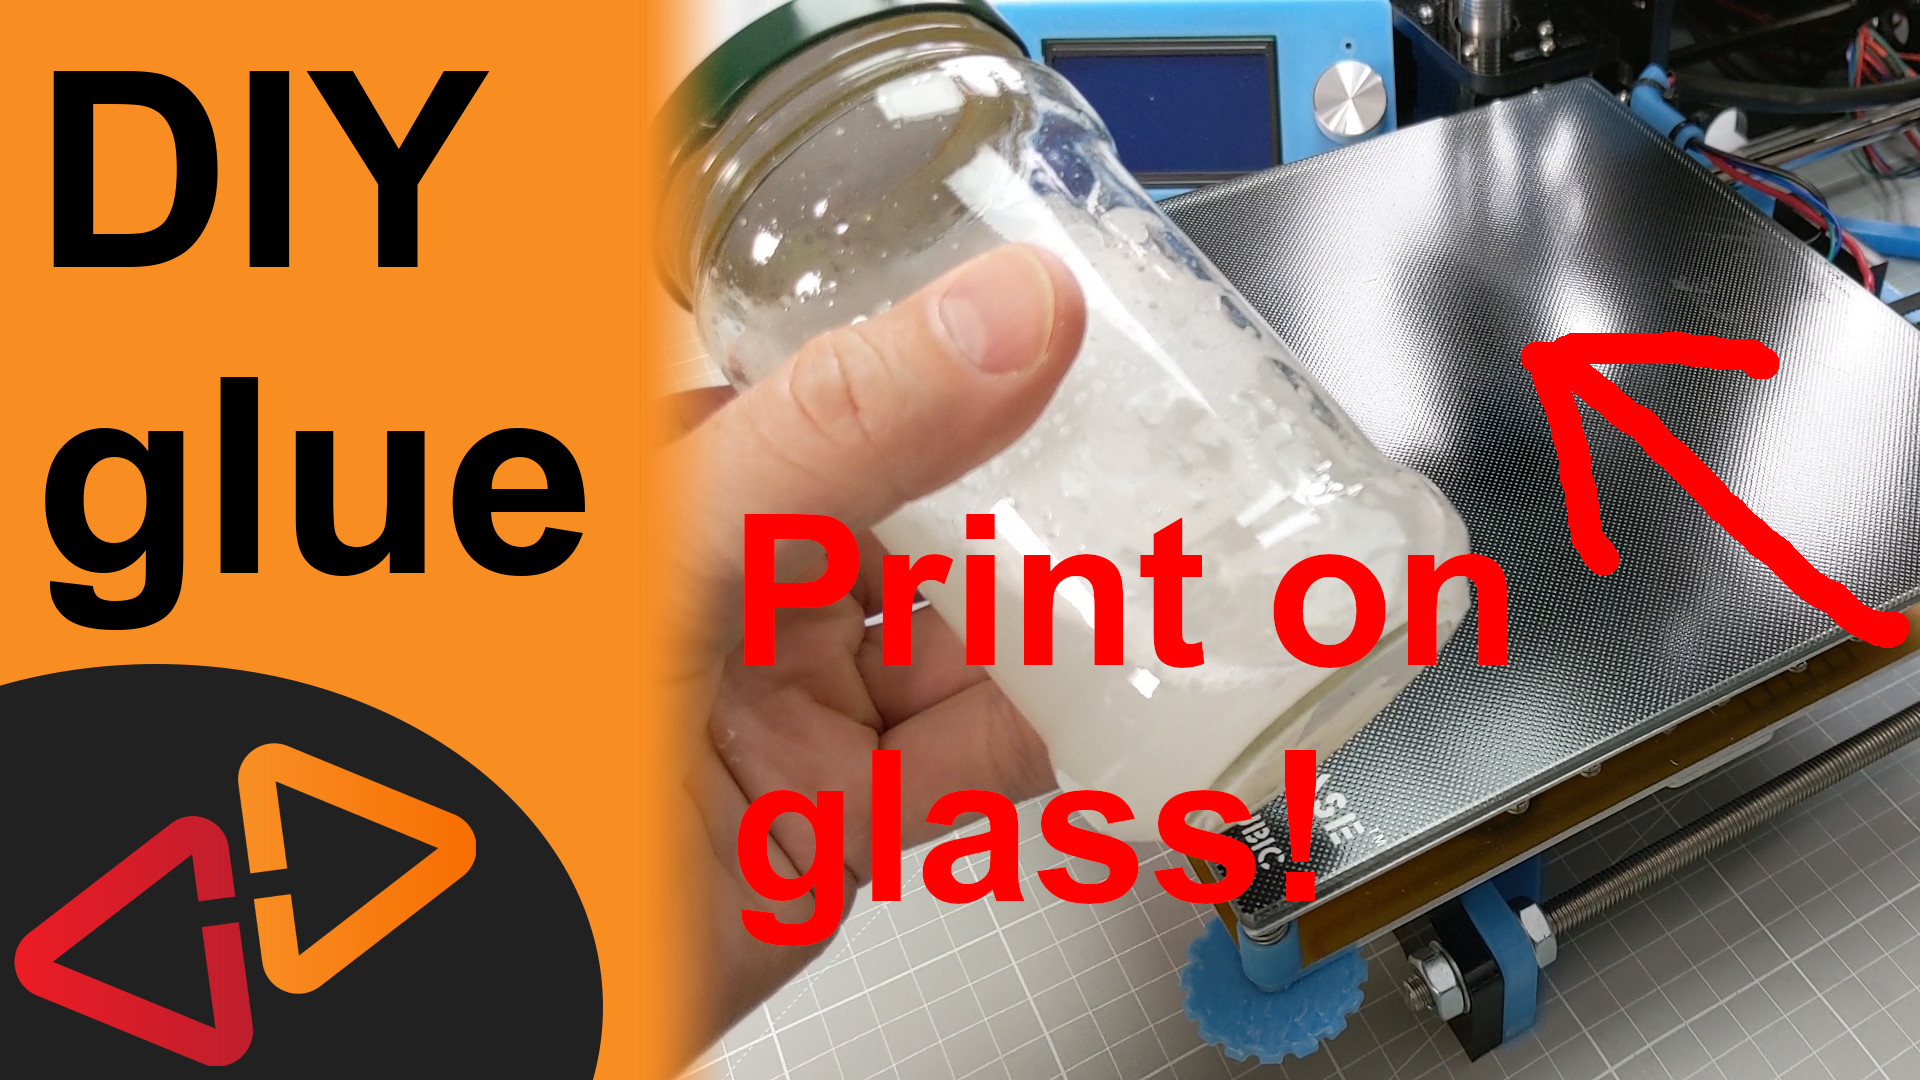 How to make 3D prints stick on glass with this homemade PVA glue